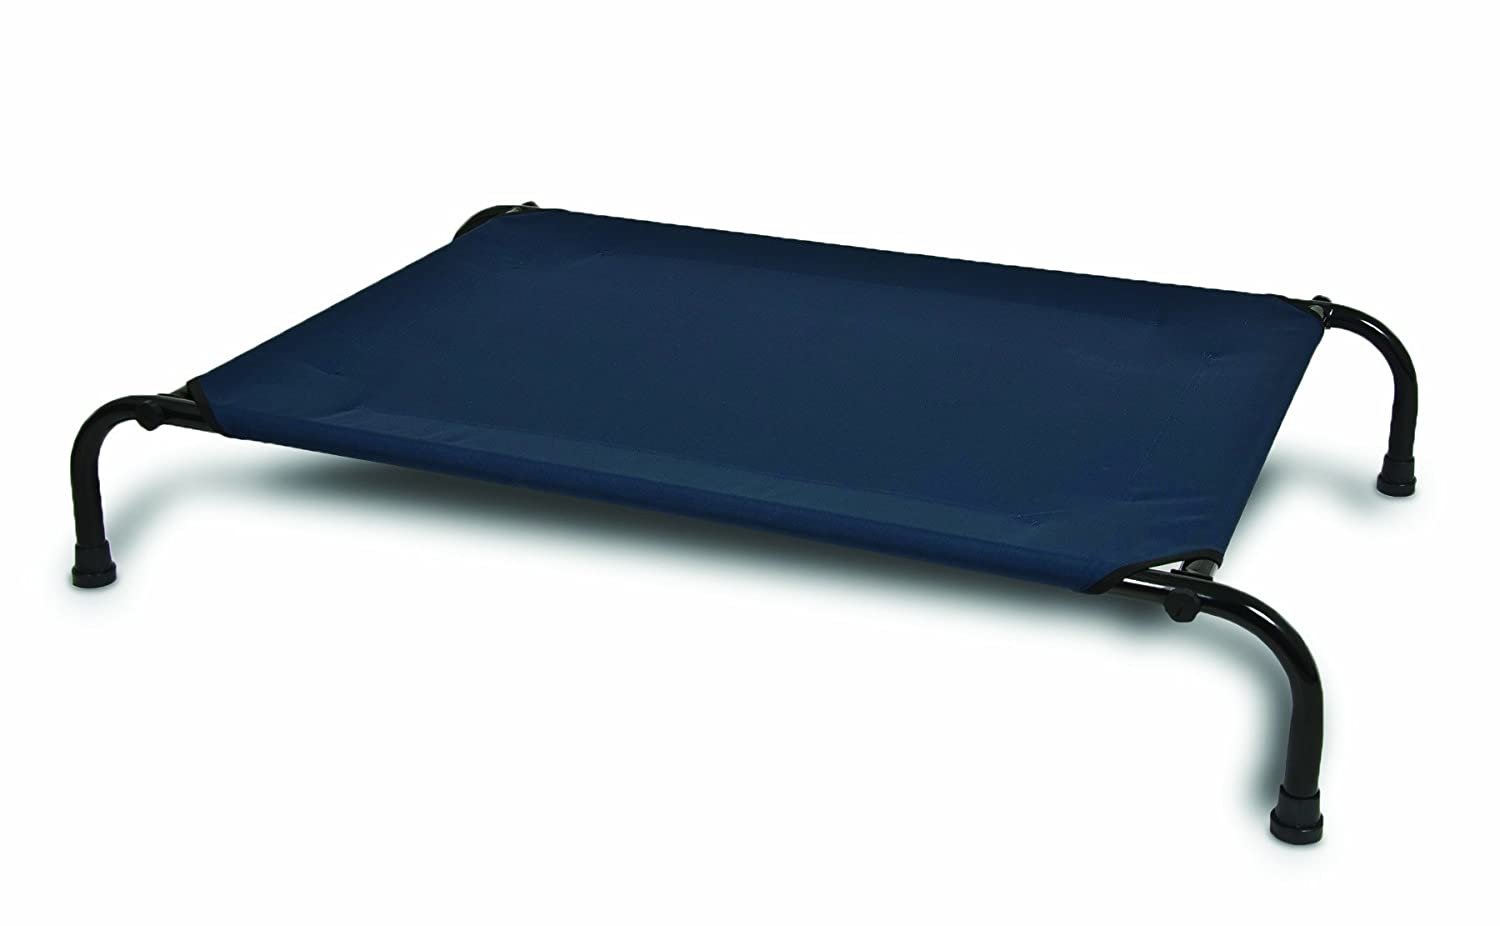 Blue Fabric Bed Part - 32: Amazon.com : Aspen Pet Elevated Pet Bed, 43-Inch By 32-Inch, Large, Blue  Fabric With Black Frame : Raised Dog Bed Large : Pet Supplies